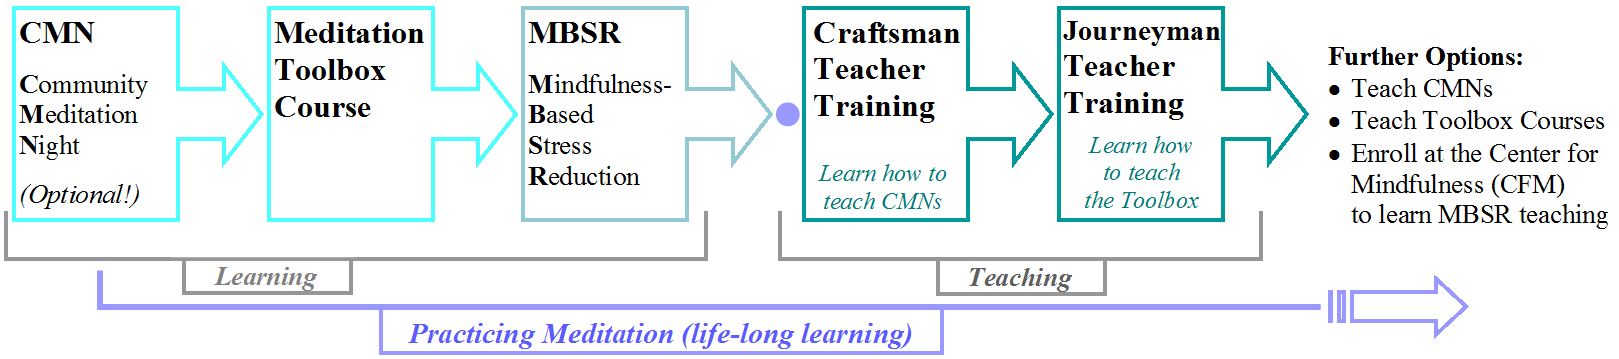 Meditation Teacher Training Learning Pathway